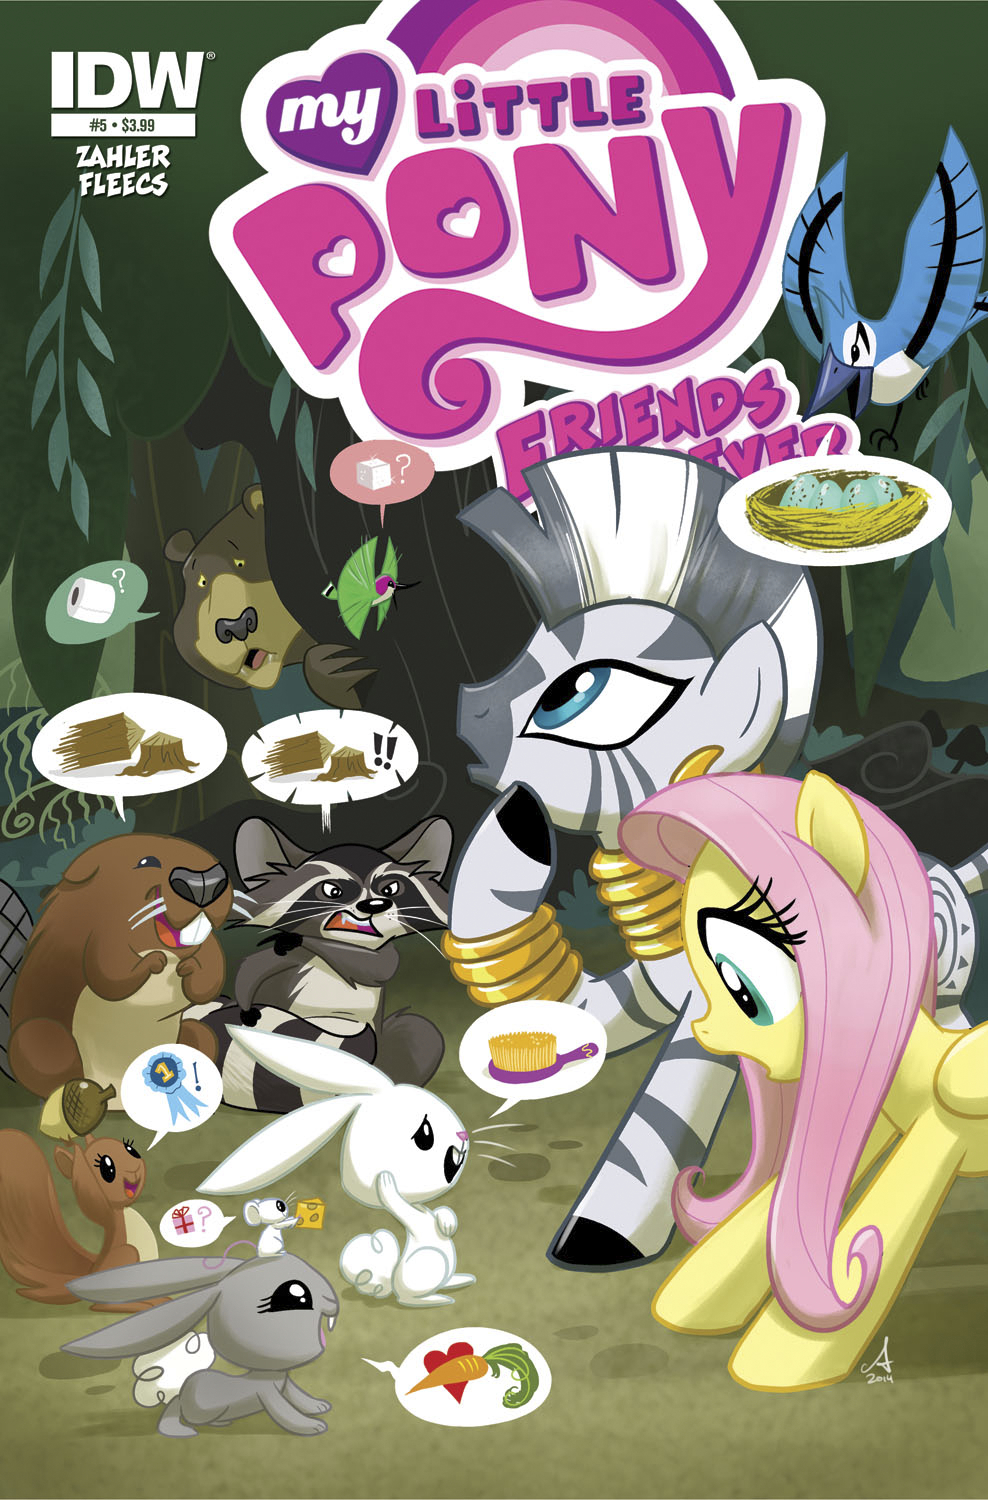 MY LITTLE PONY FRIENDS FOREVER #5 FREE 10 COPY INCV